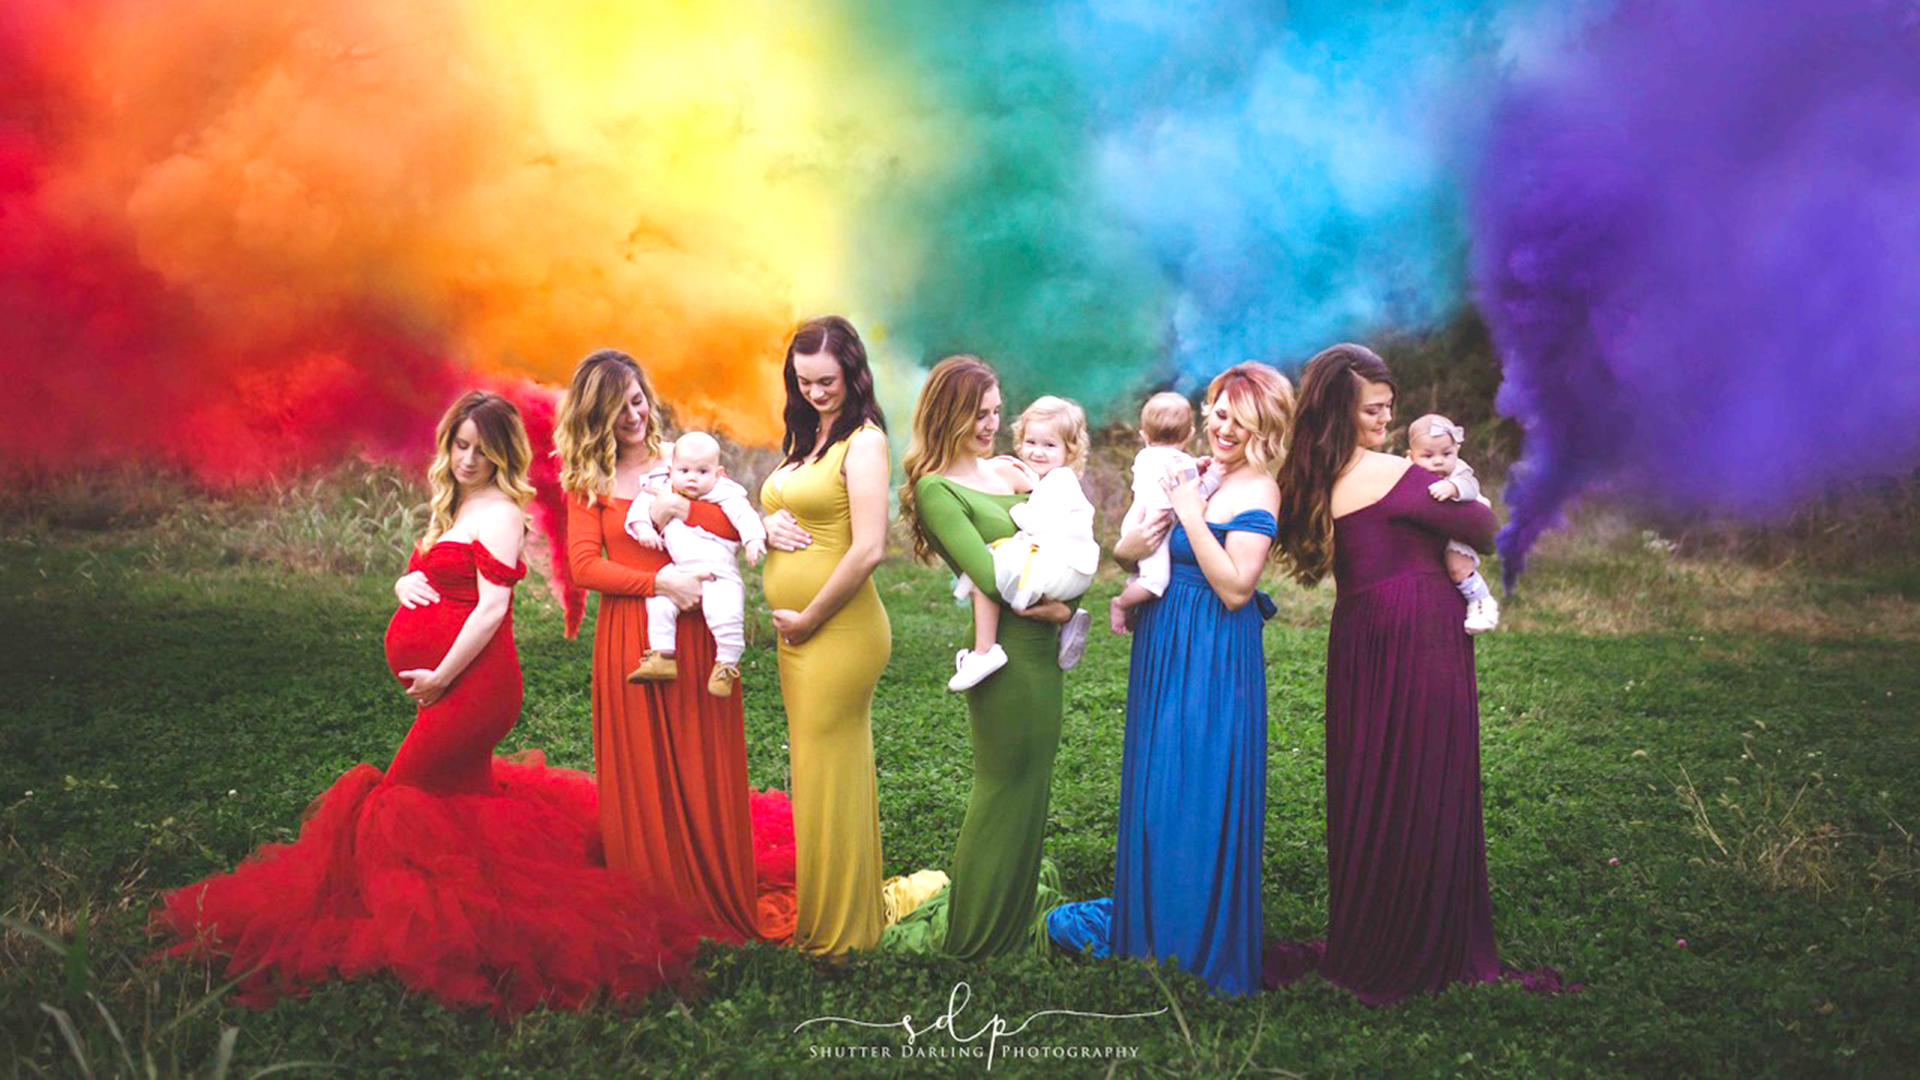 rainbow babies photo helps moms heal from miscarriage